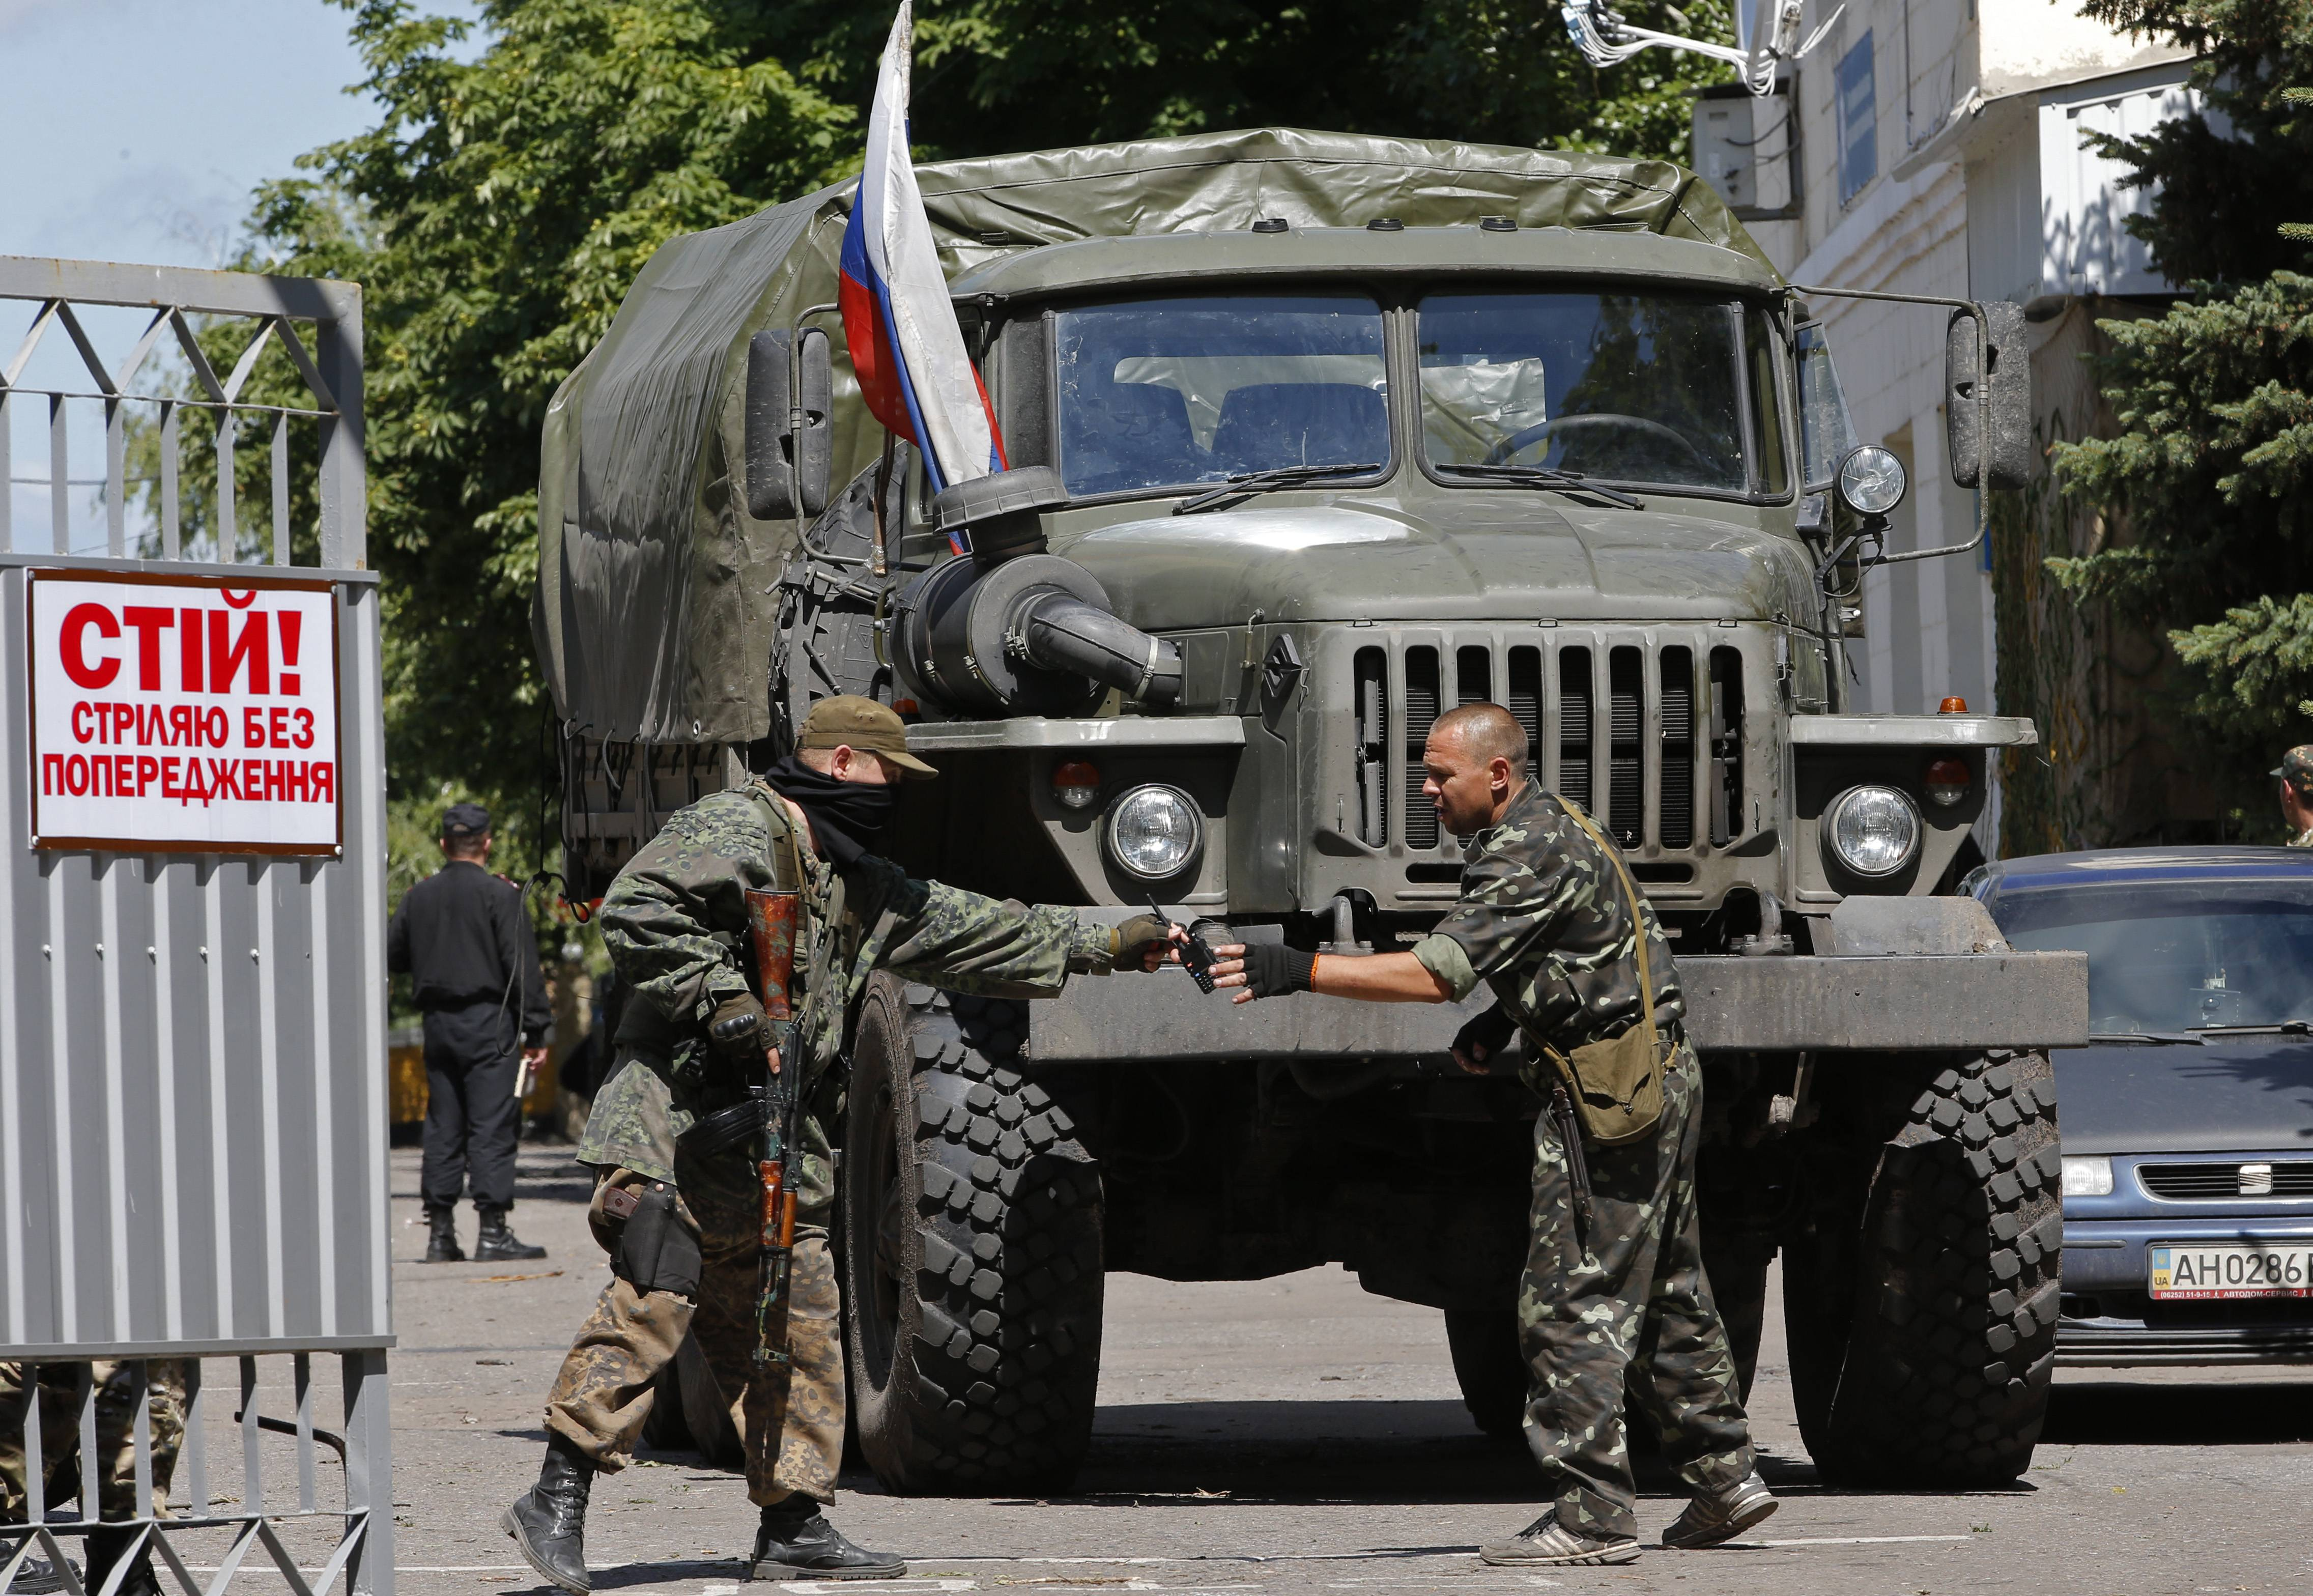 "Pro-Russian fighters stand next to a truck with a Russian flag, inside a captured Ukrainian National Guard unit in the city of Donetsk, eastern Ukraine Saturday, June 28. Russia's foreign minister on Saturday accused the United States of encouraging Ukraine to challenge Moscow and heavily weighing in on the European Union. Speaking in televised remarks Saturday, Sergey Lavrov said that ""our American colleagues still prefer to push the Ukrainian leadership toward a confrontational path."" He added that chances for settling the Ukrainian crisis would have been higher if it only depended on Russia and Europe. The poster reads 'Stop! Shoot without warning!"